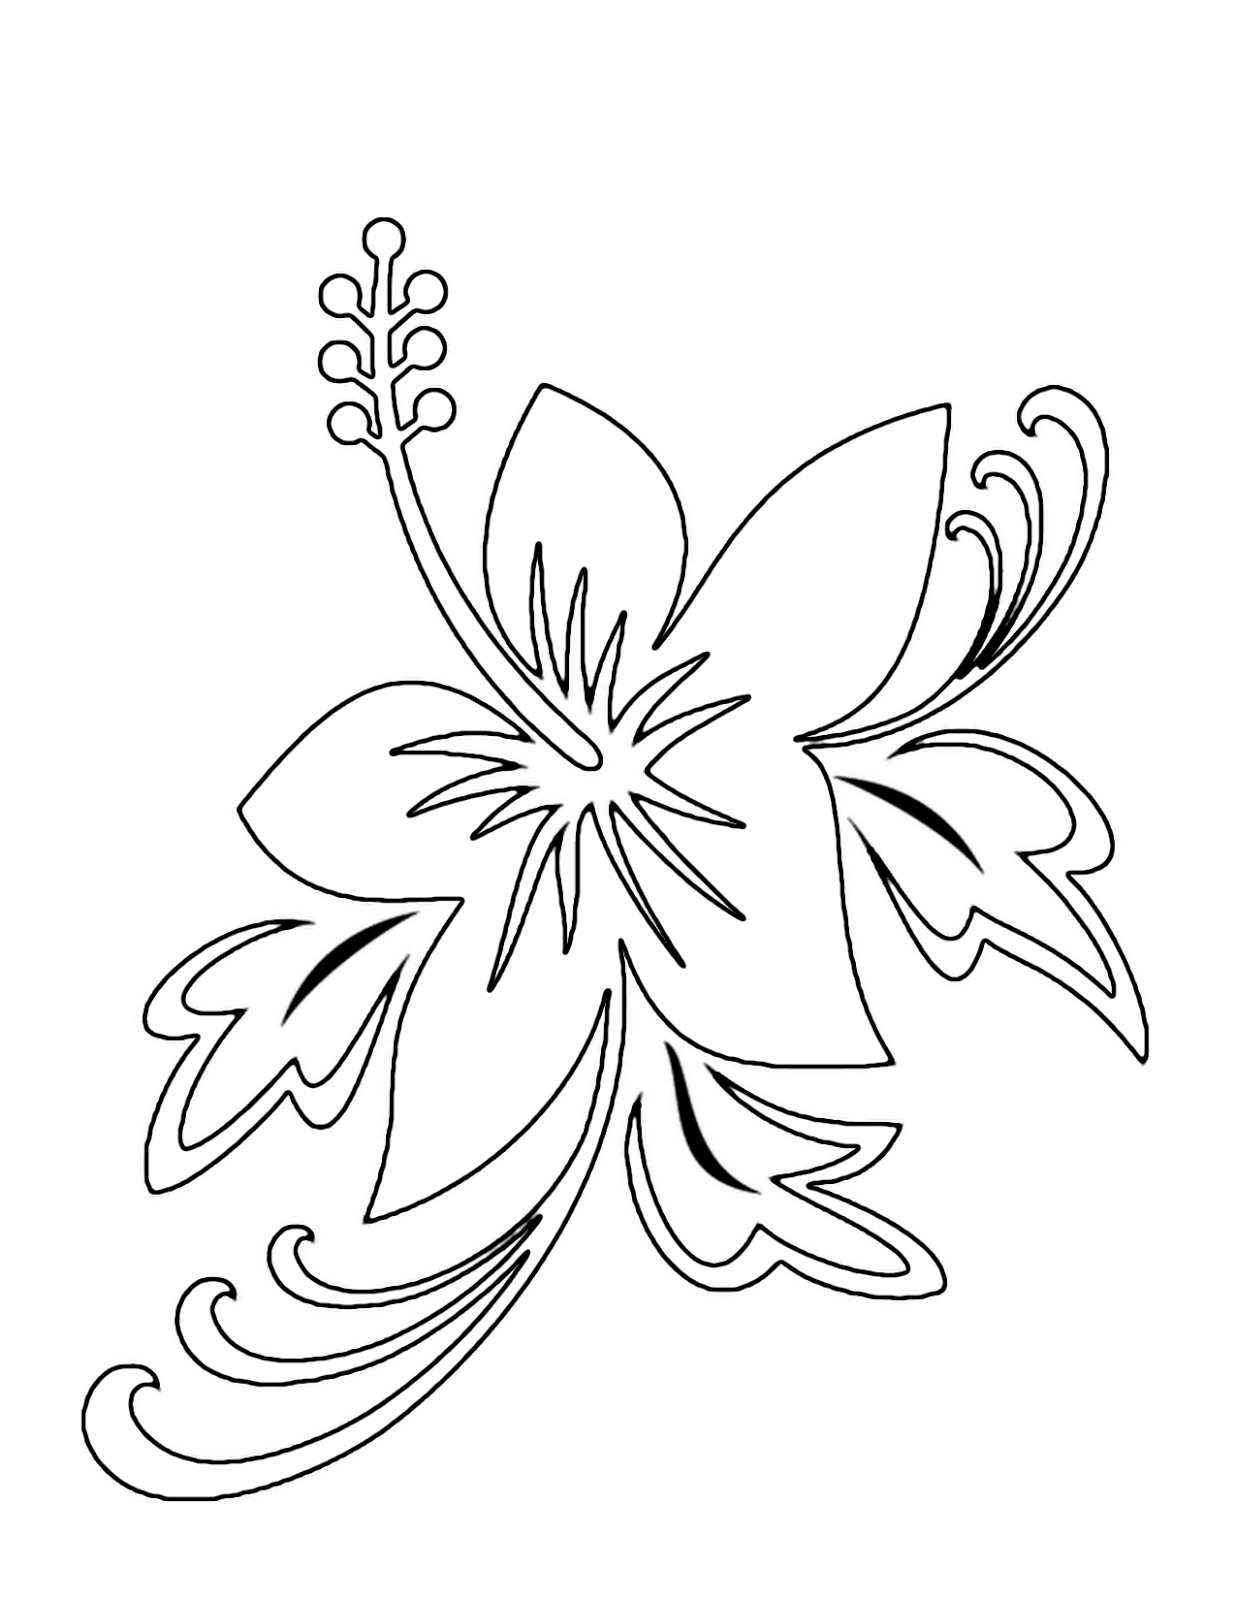 Coloring Pages Of Hibiscus Flowers : Hibiscus flower coloring pages pictures long hairstyles